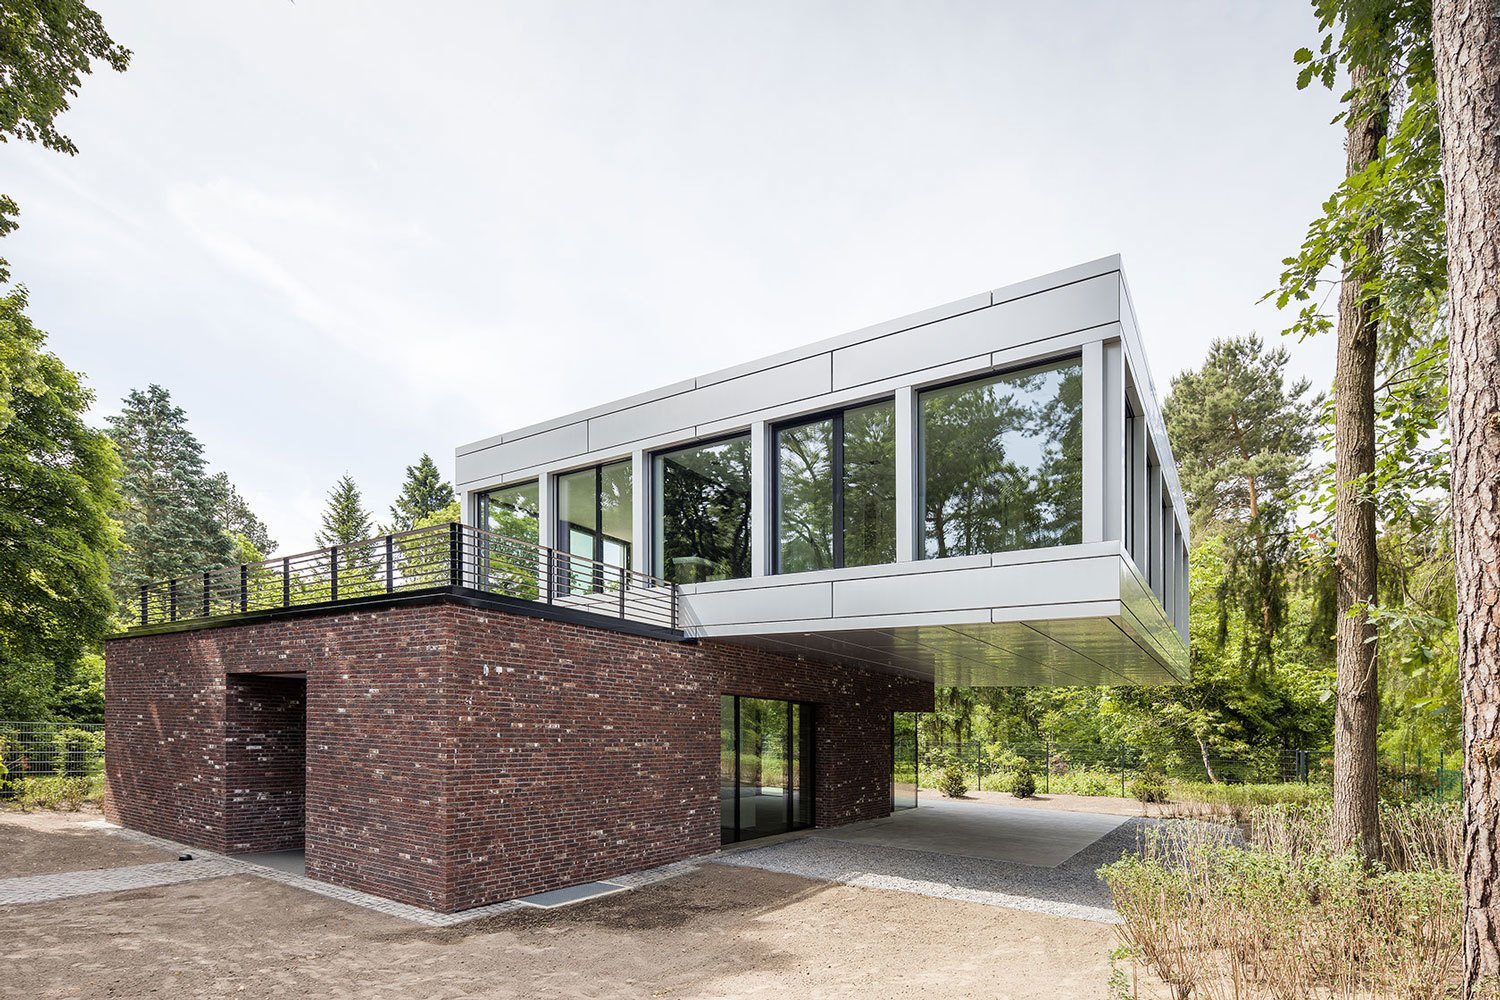 The lower level of this dramatically cantilevered house is covered in traditional red brick, while the upper level consists of coil-coated aluminium sheet with large glass panes.  Remarkable Brick Homes by Luke Hopping